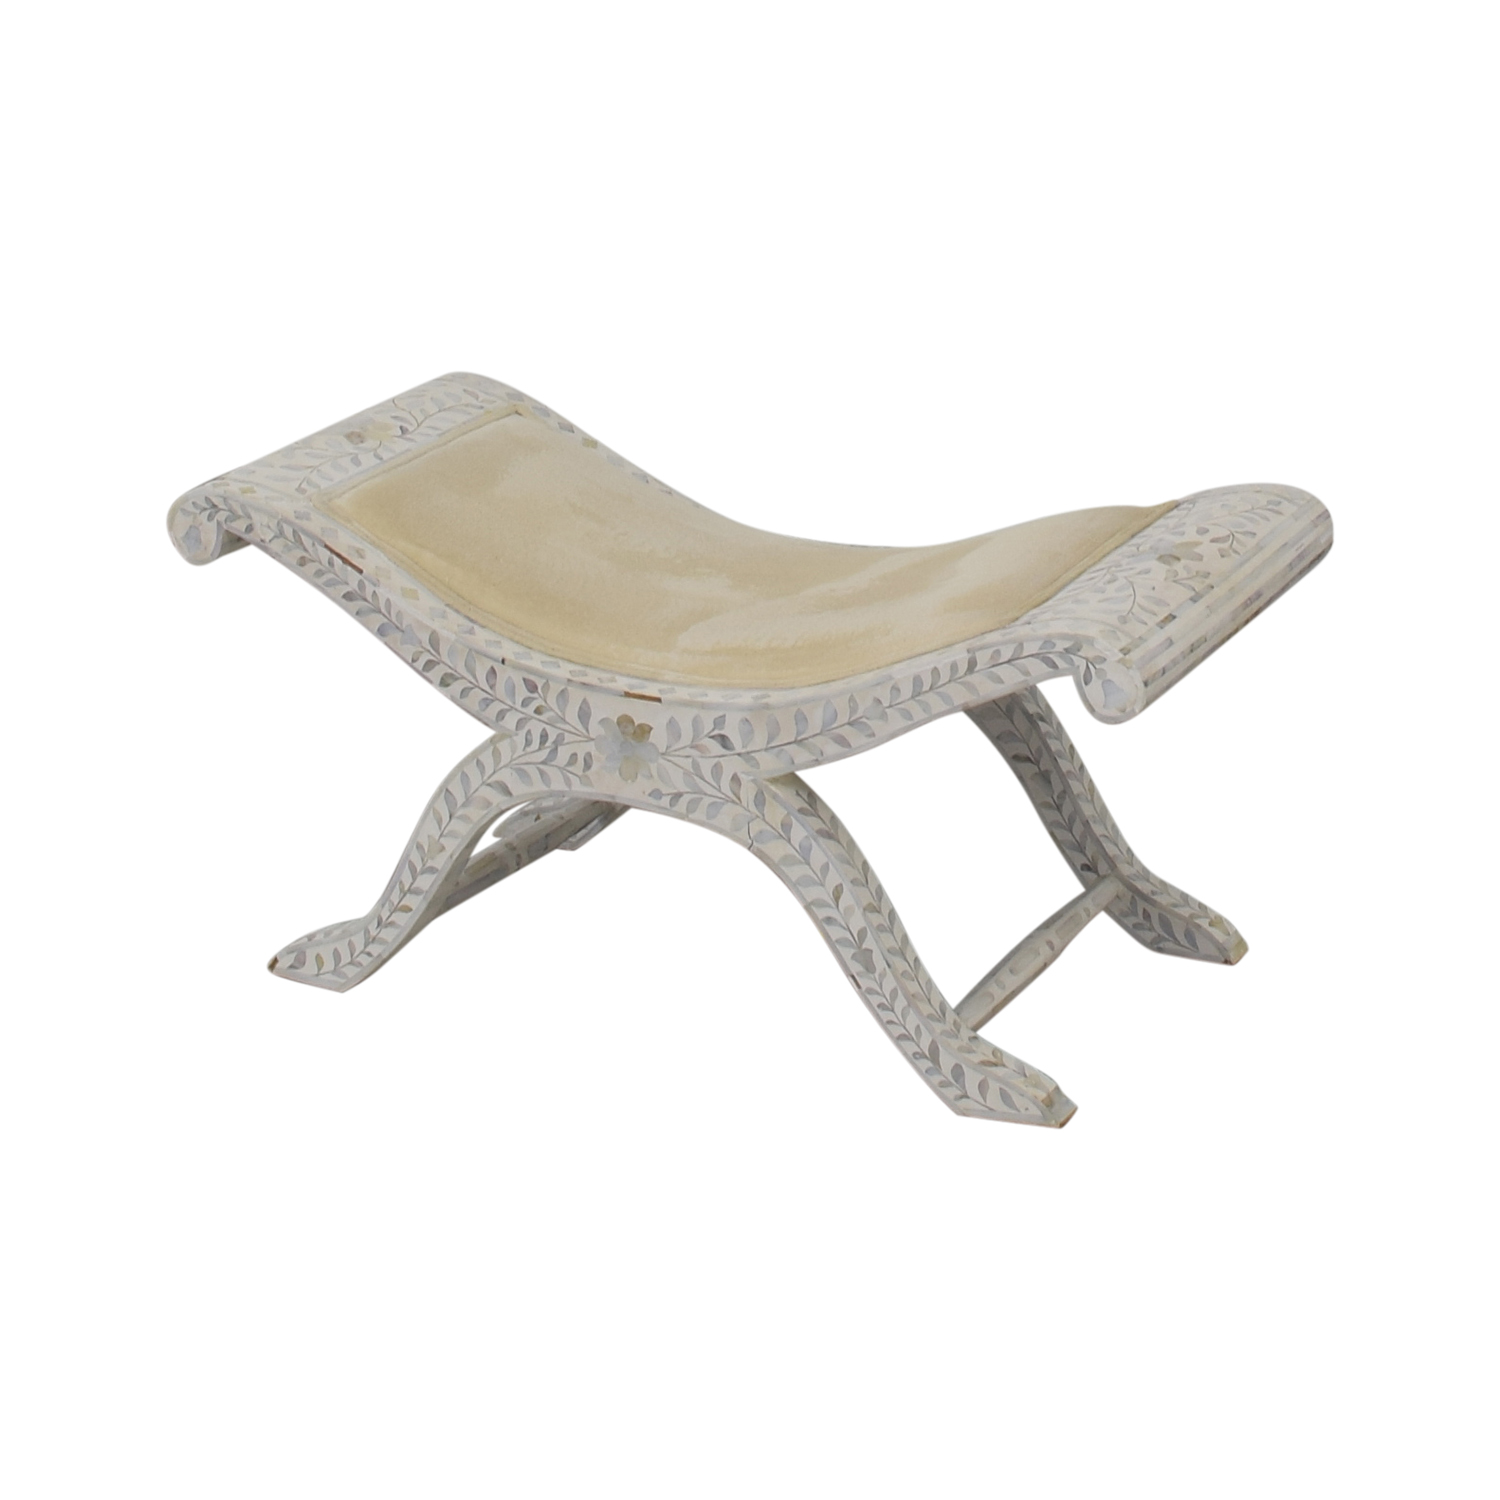 ABC Carpet & Home ABC Carpet & Home Shell Mosaic Bench on sale